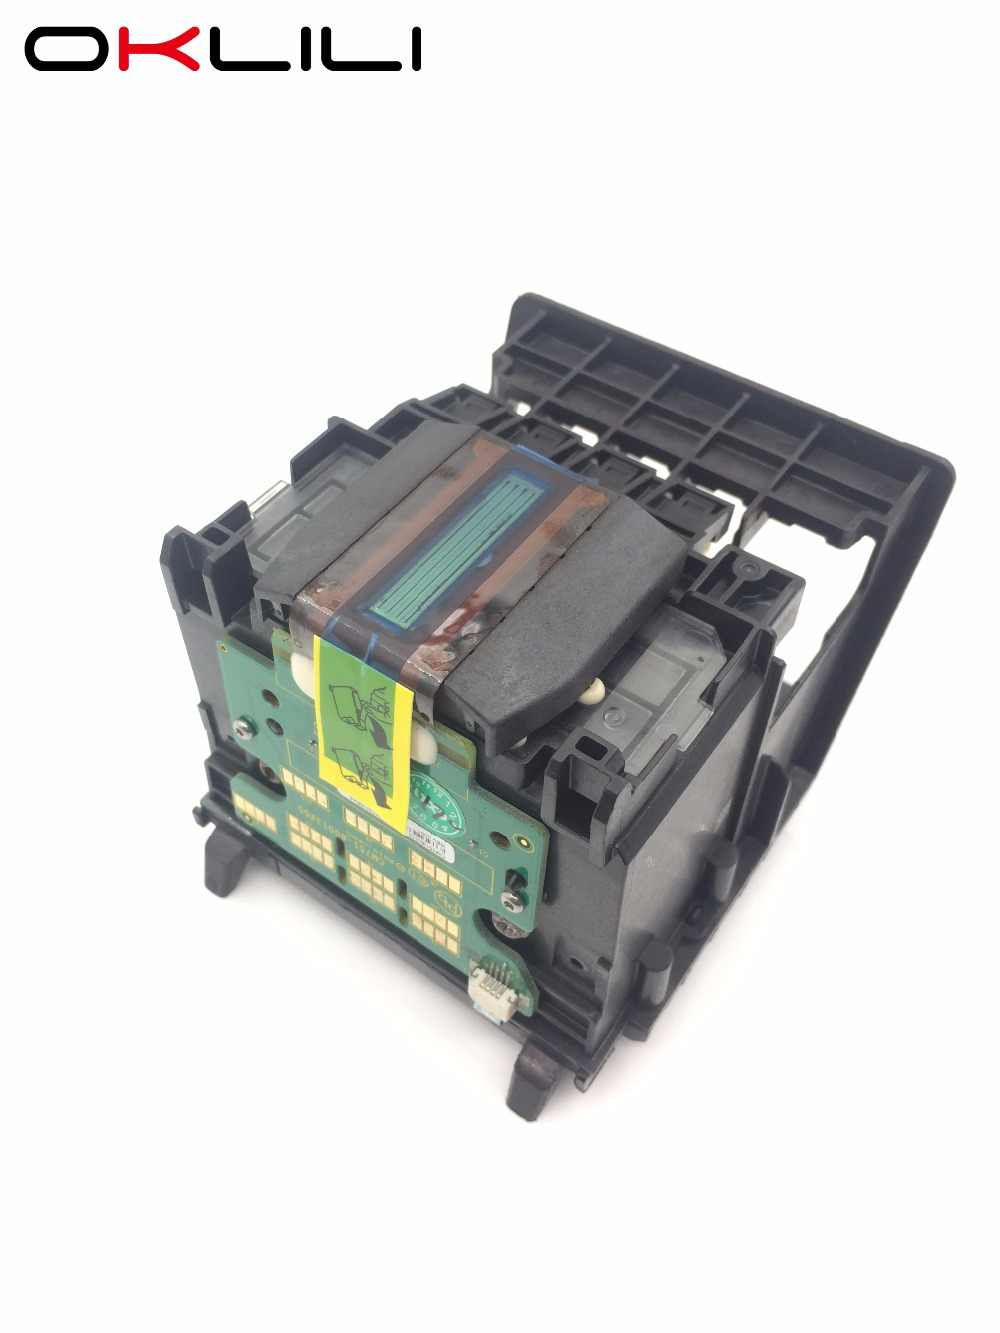 ORIGINAL CM751-80013A 950 951 950XL 951XL Printhead Print head for HP Pro 8100 8600 8610 8620 8625 8630 8700 251DW 251 276 276DW